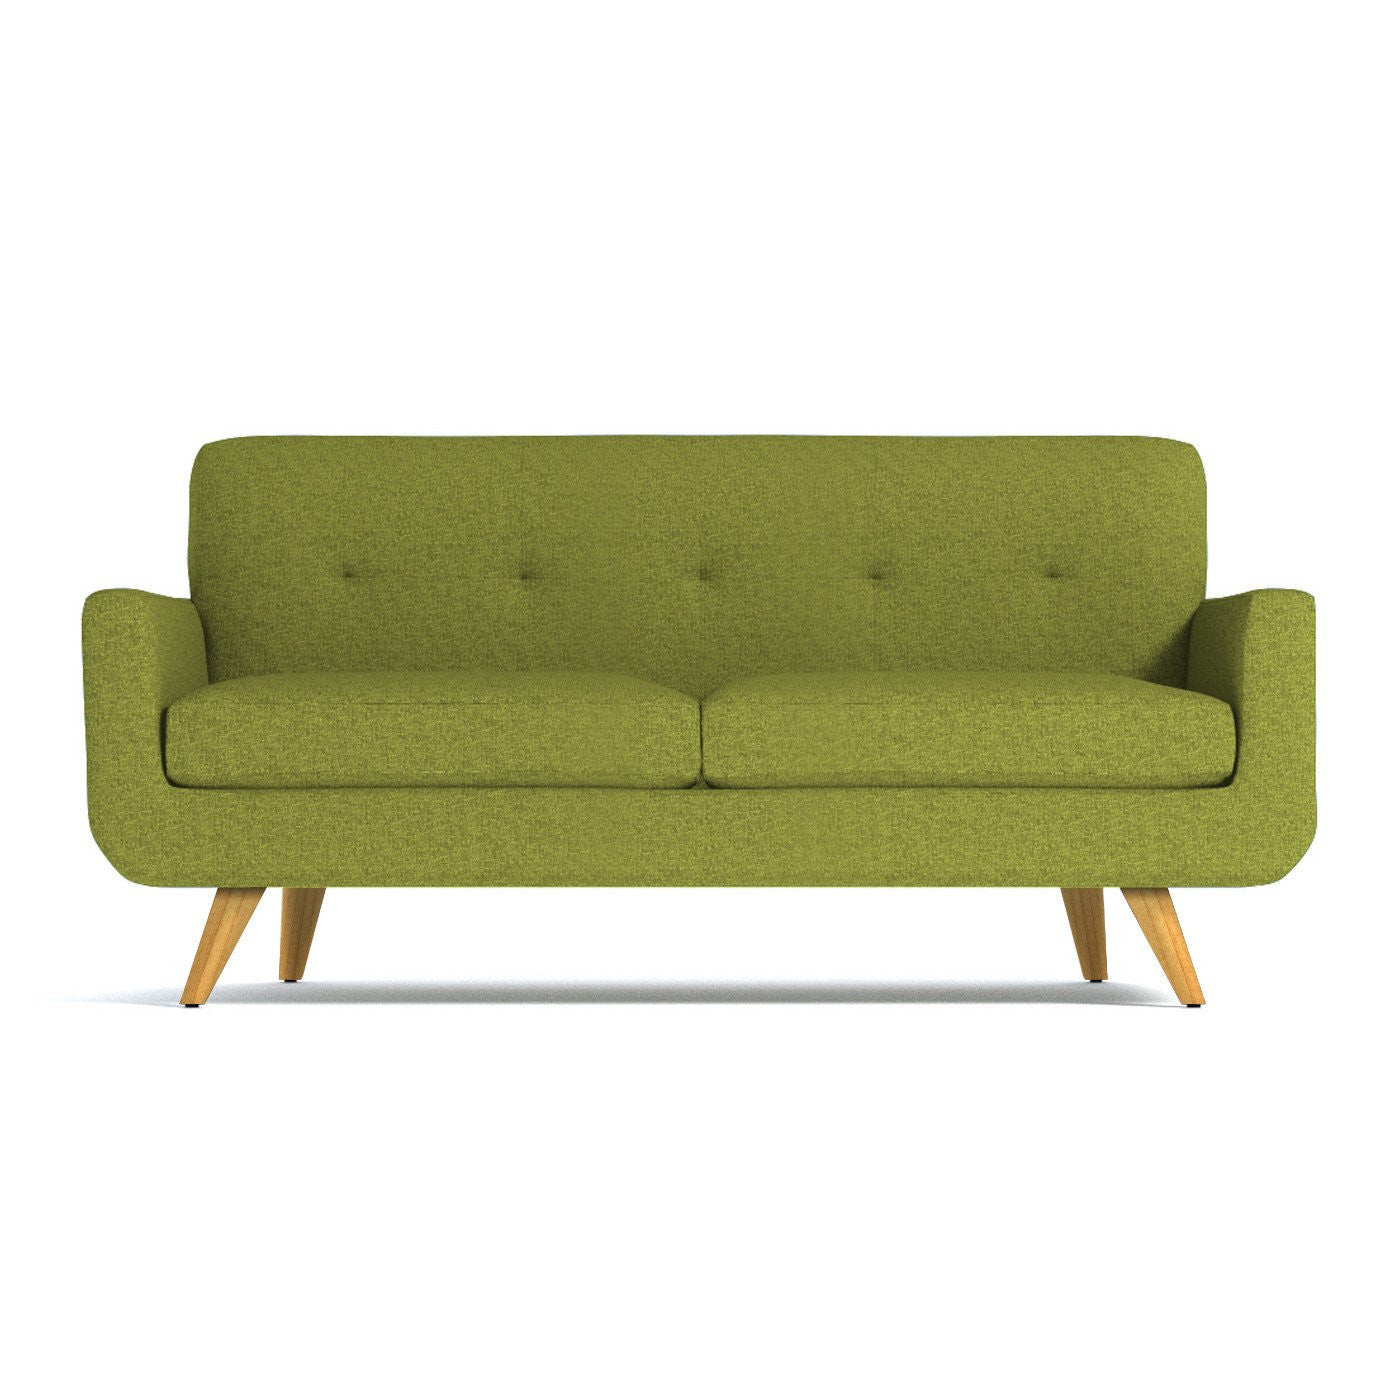 Lawson Apartment Size Sofa - Choice of Fabrics – Apt2B